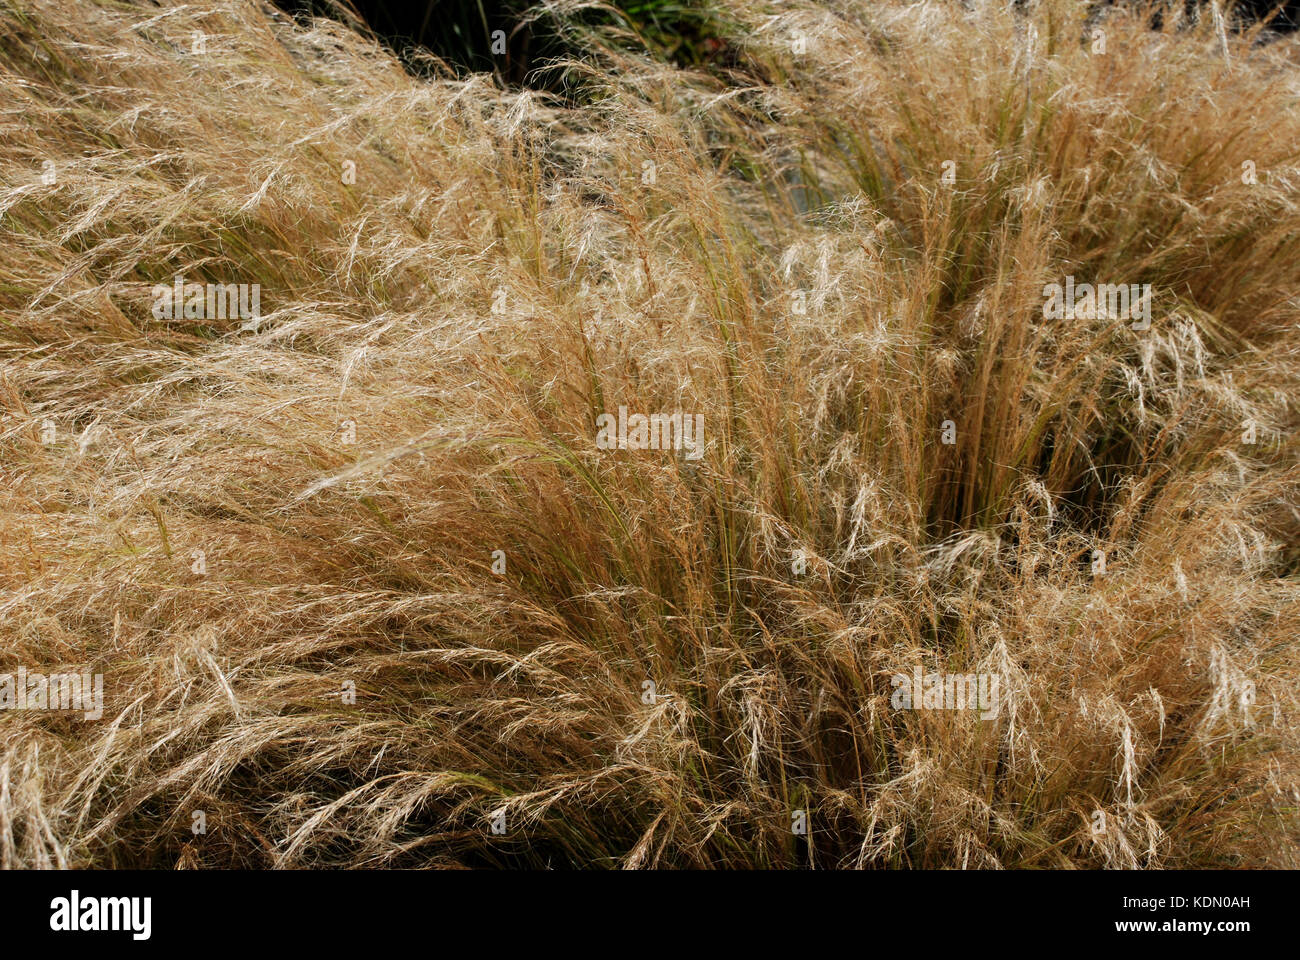 Dry grass blows in the wind - Vancouver Island -Victoria, BC, Canada - Stock Image